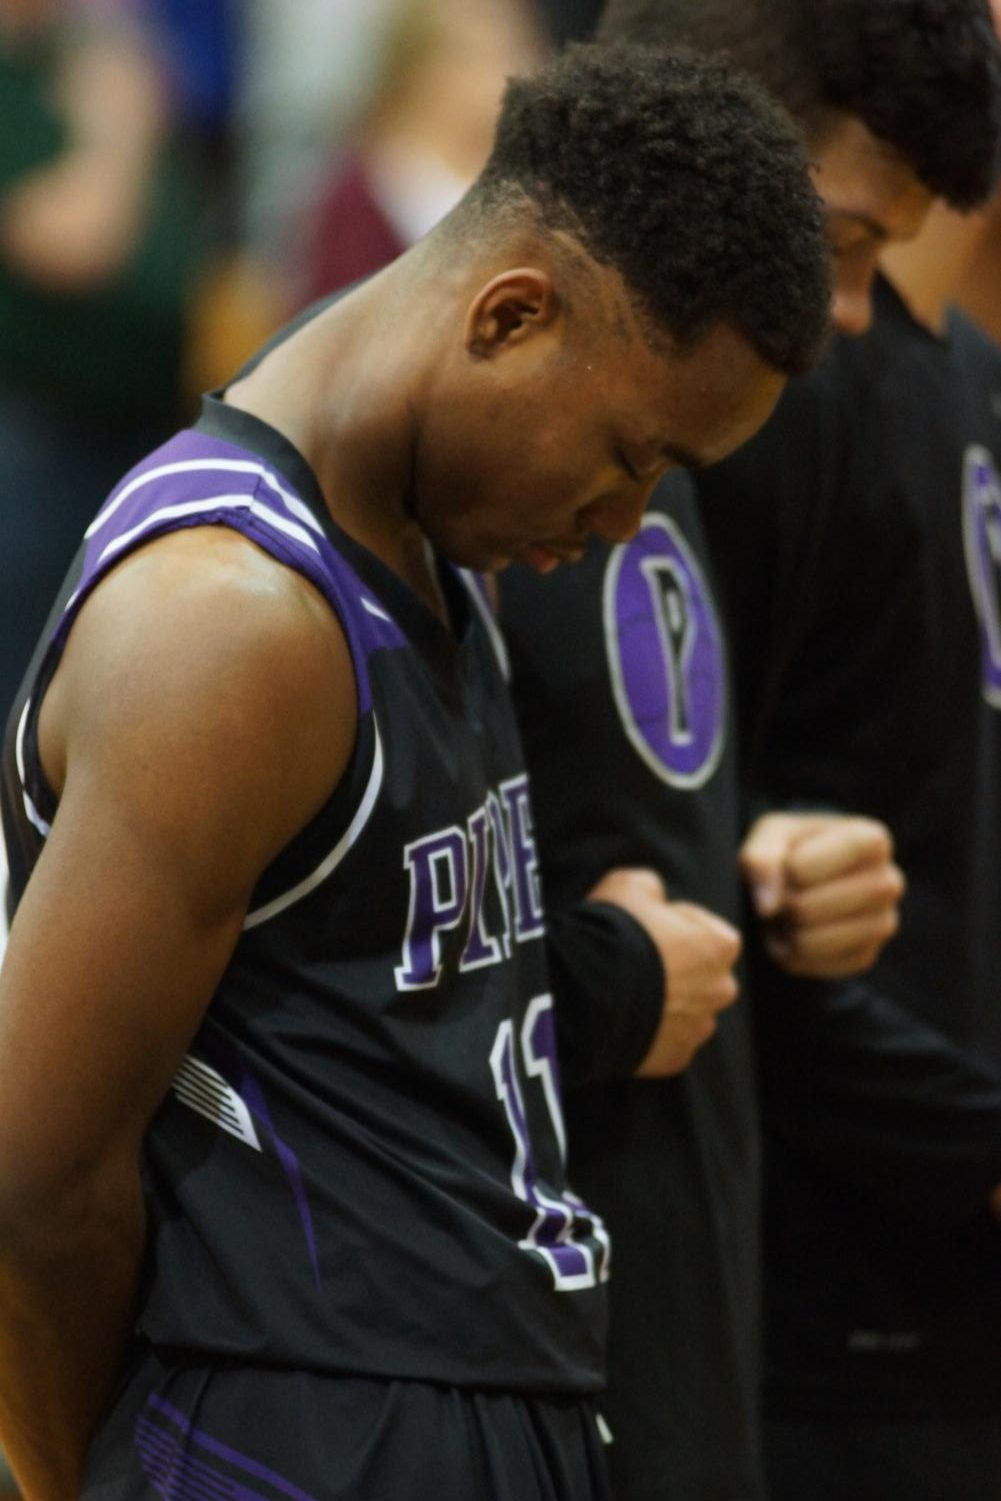 Senior Trey Bates bows his head during the national anthem during last year's sub-state game at Basehor-Linwood